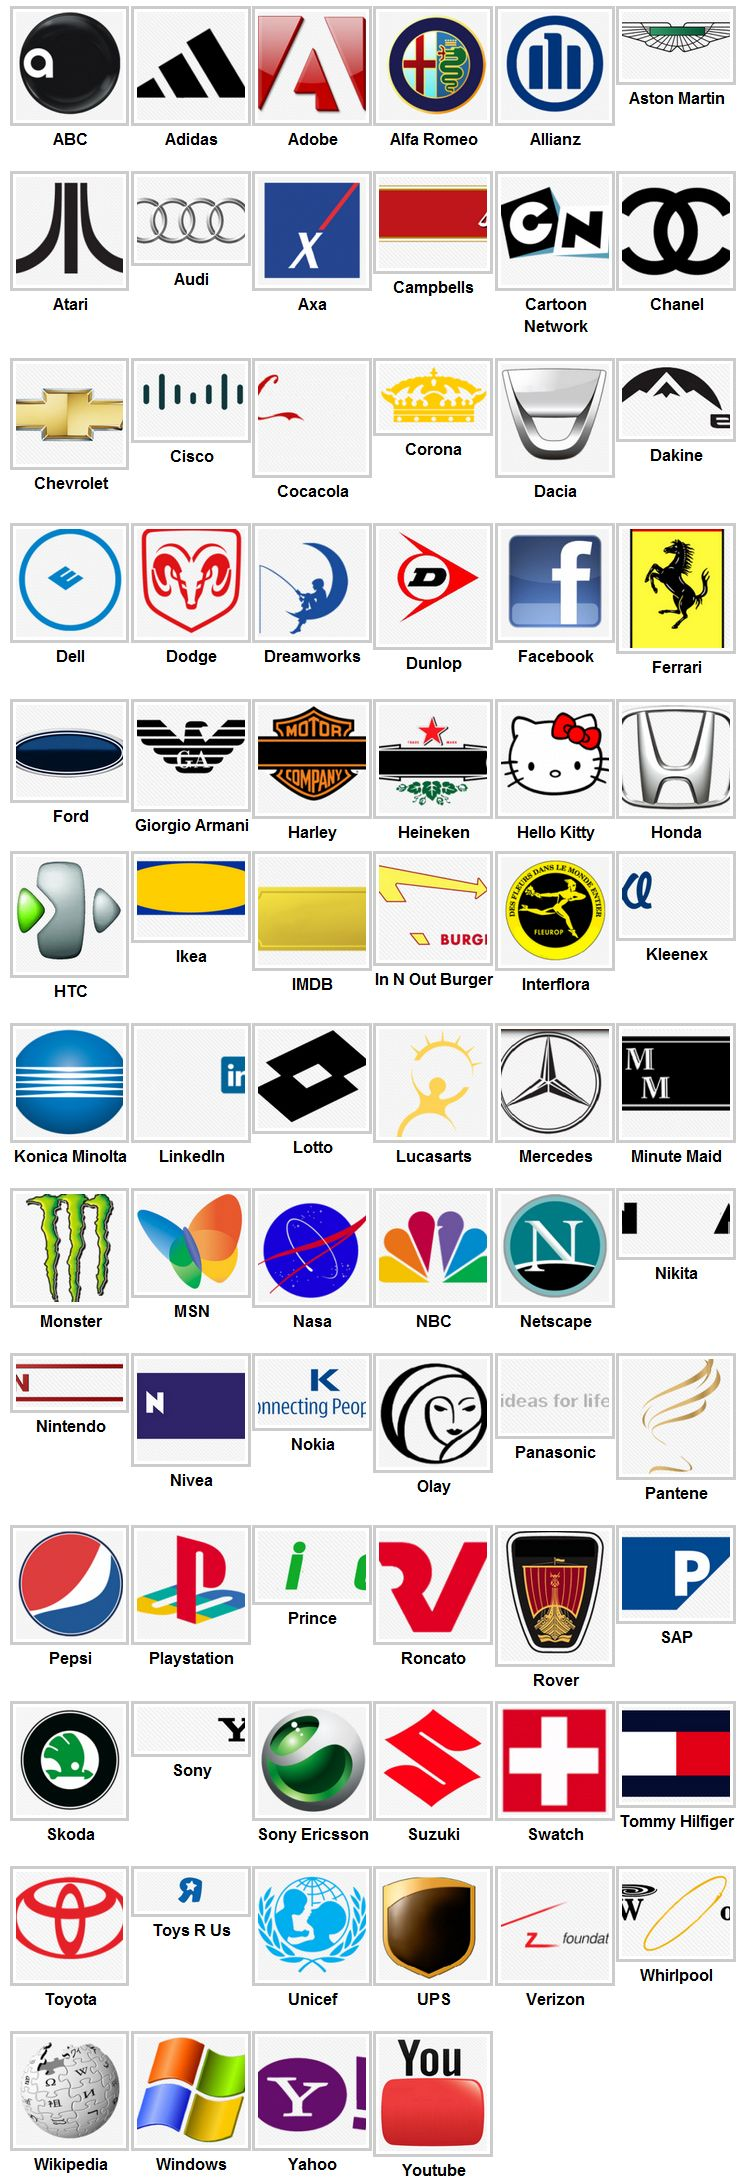 drink logos and names google search logo quiz answers logo quiz logo quiz games logo quiz answers